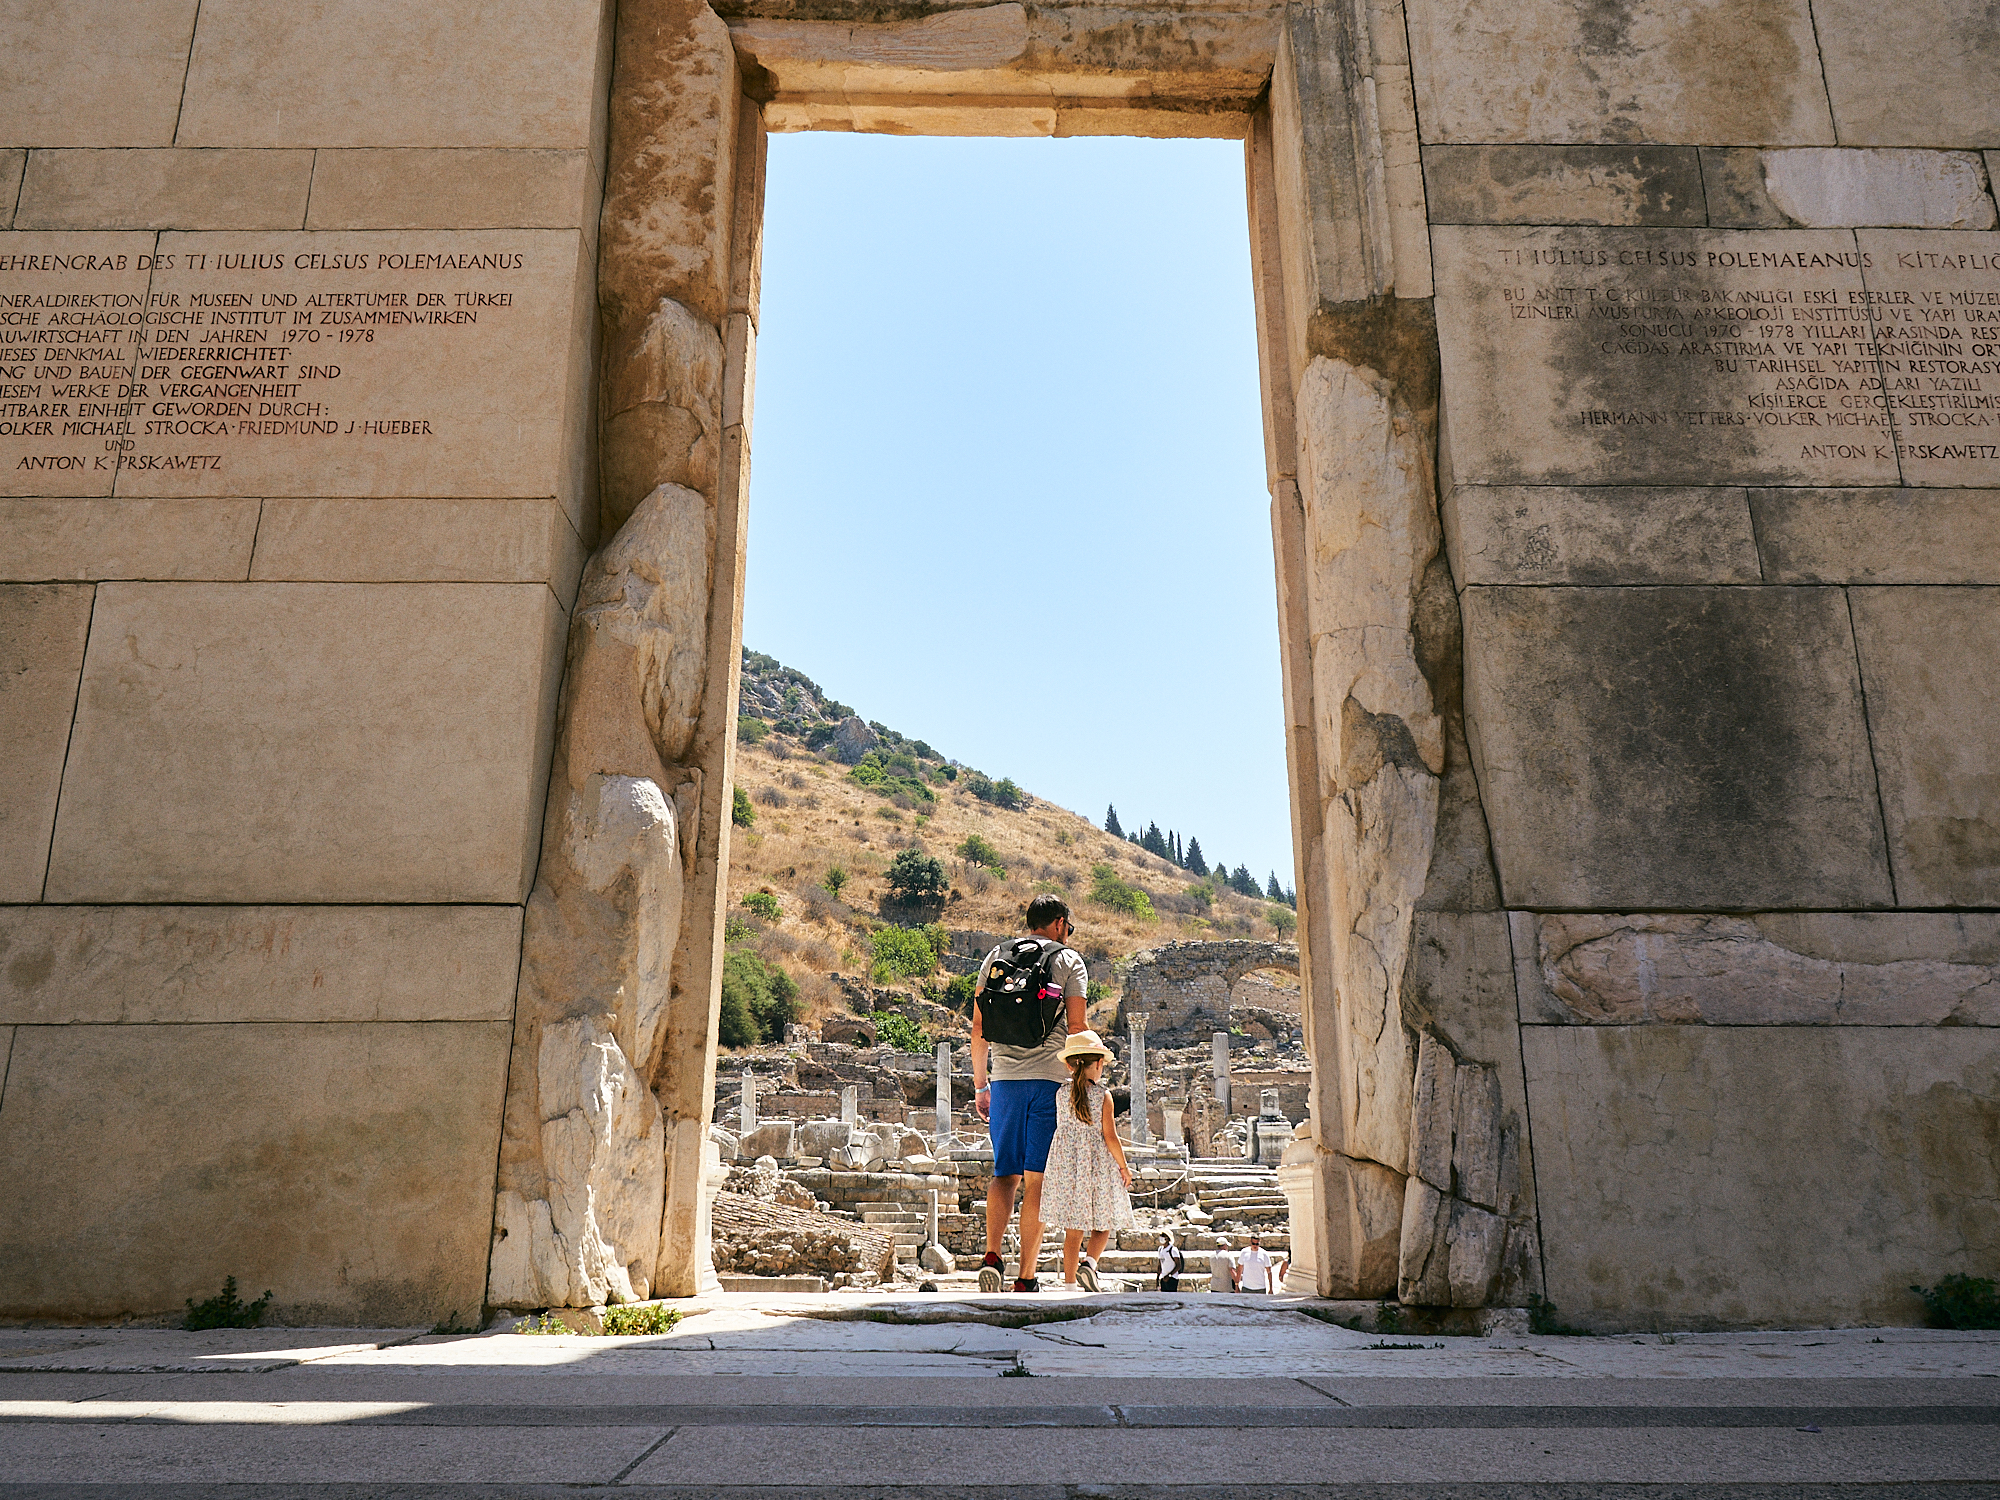 family explore Ephesus library during coronavirus holiday